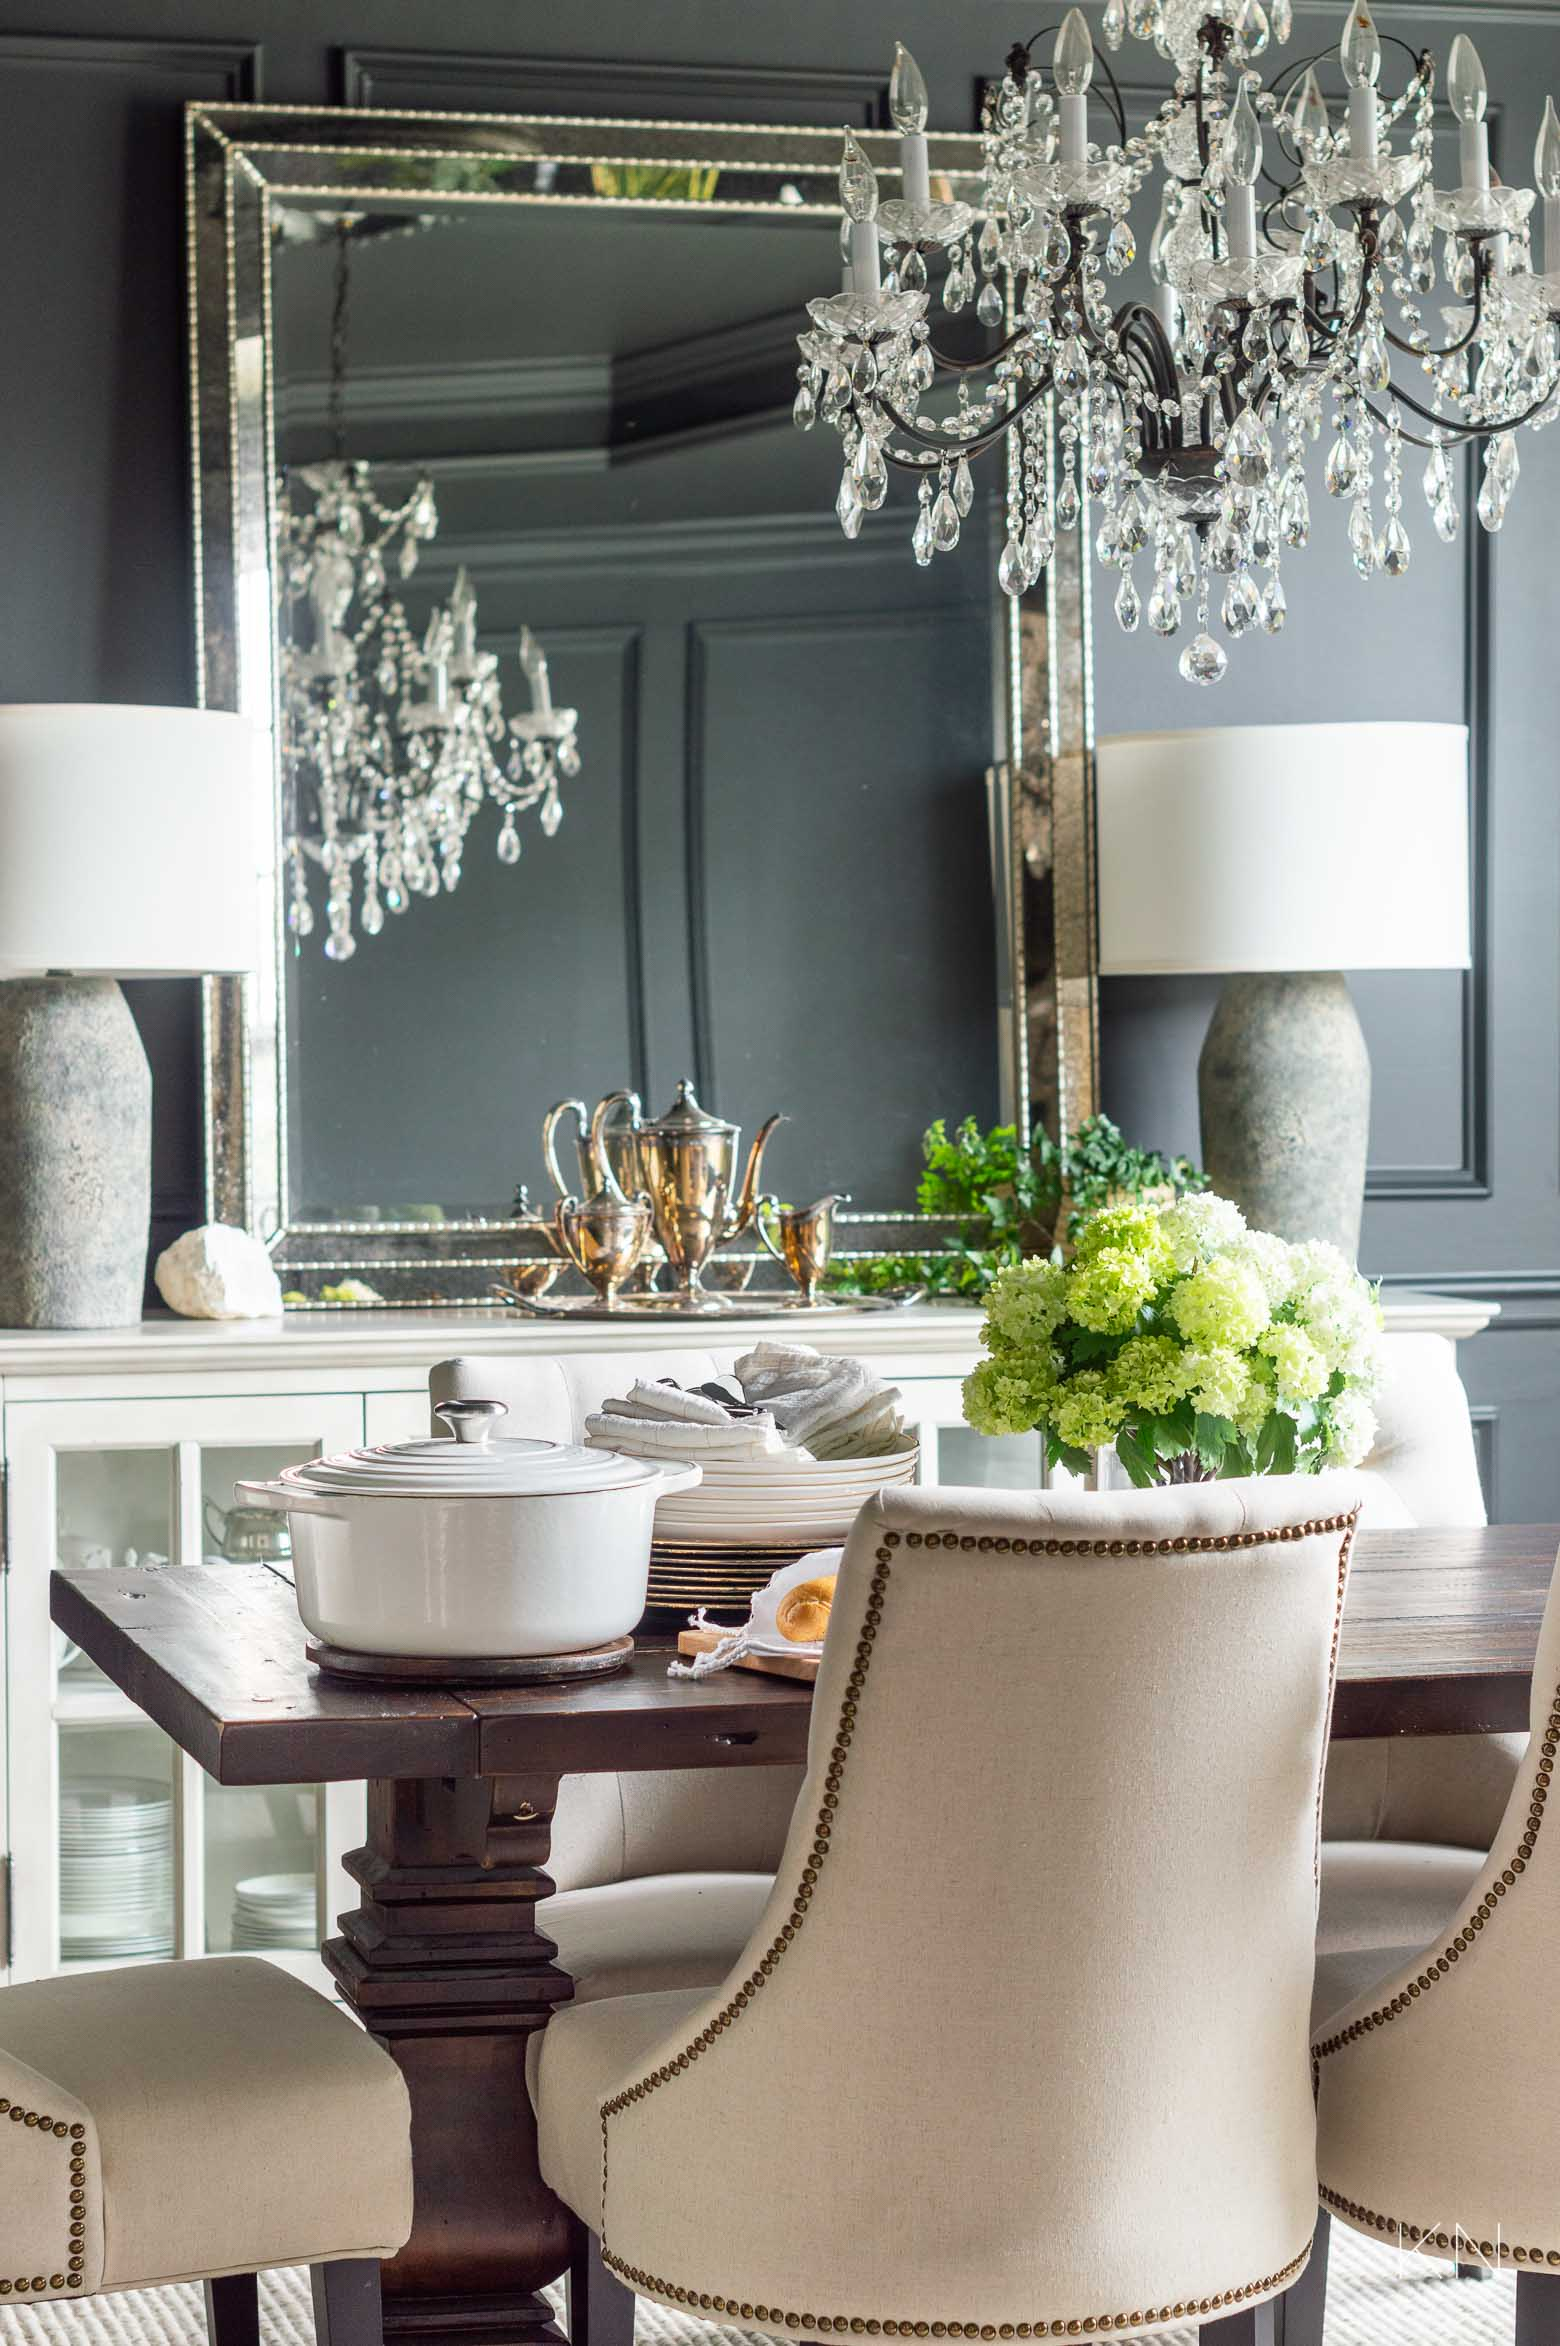 Dining Room Styled with Favorite Cookware